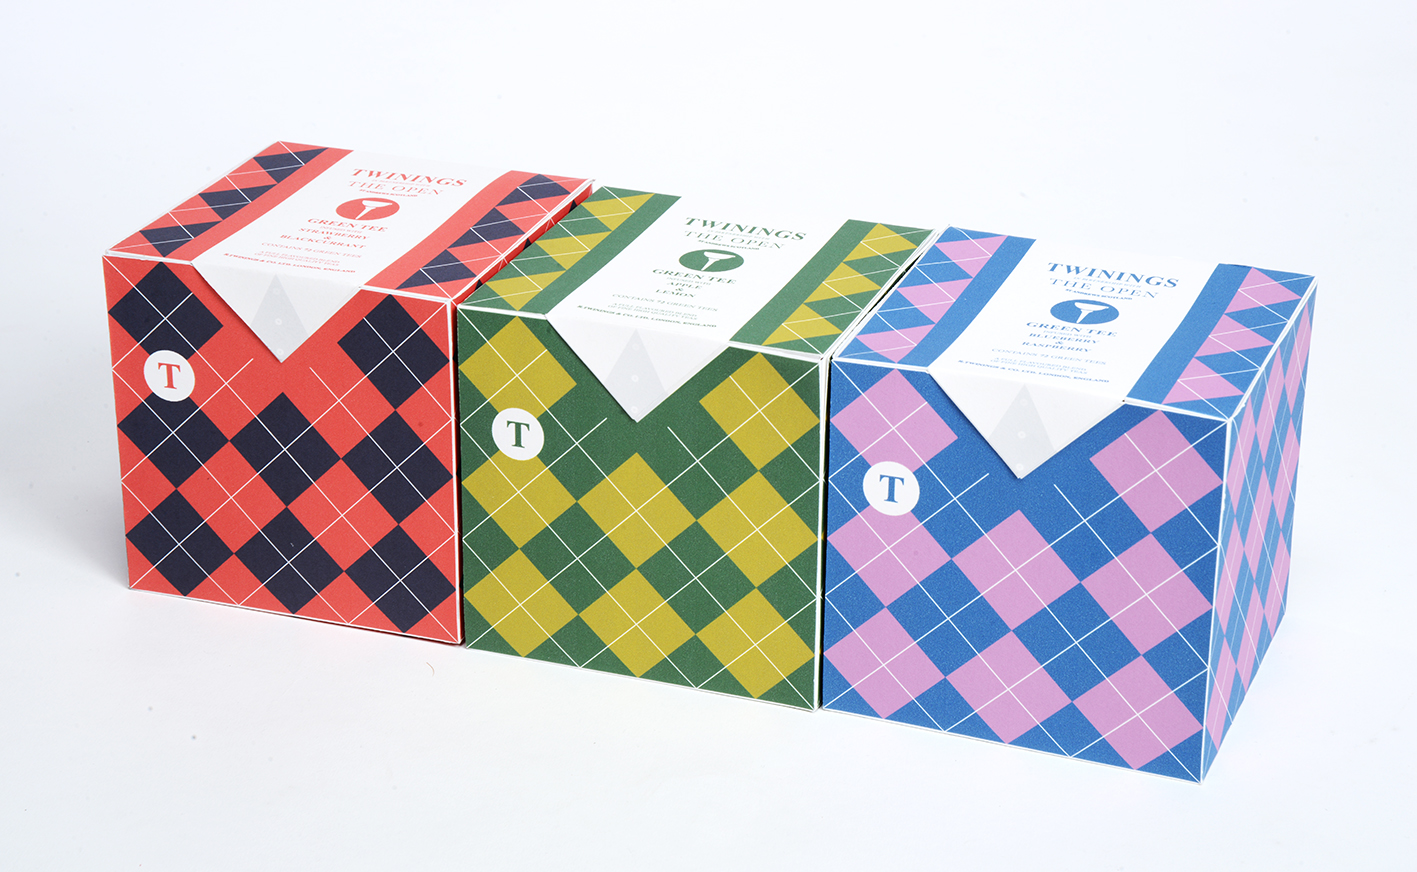 Box designs based on traditional golf attire.